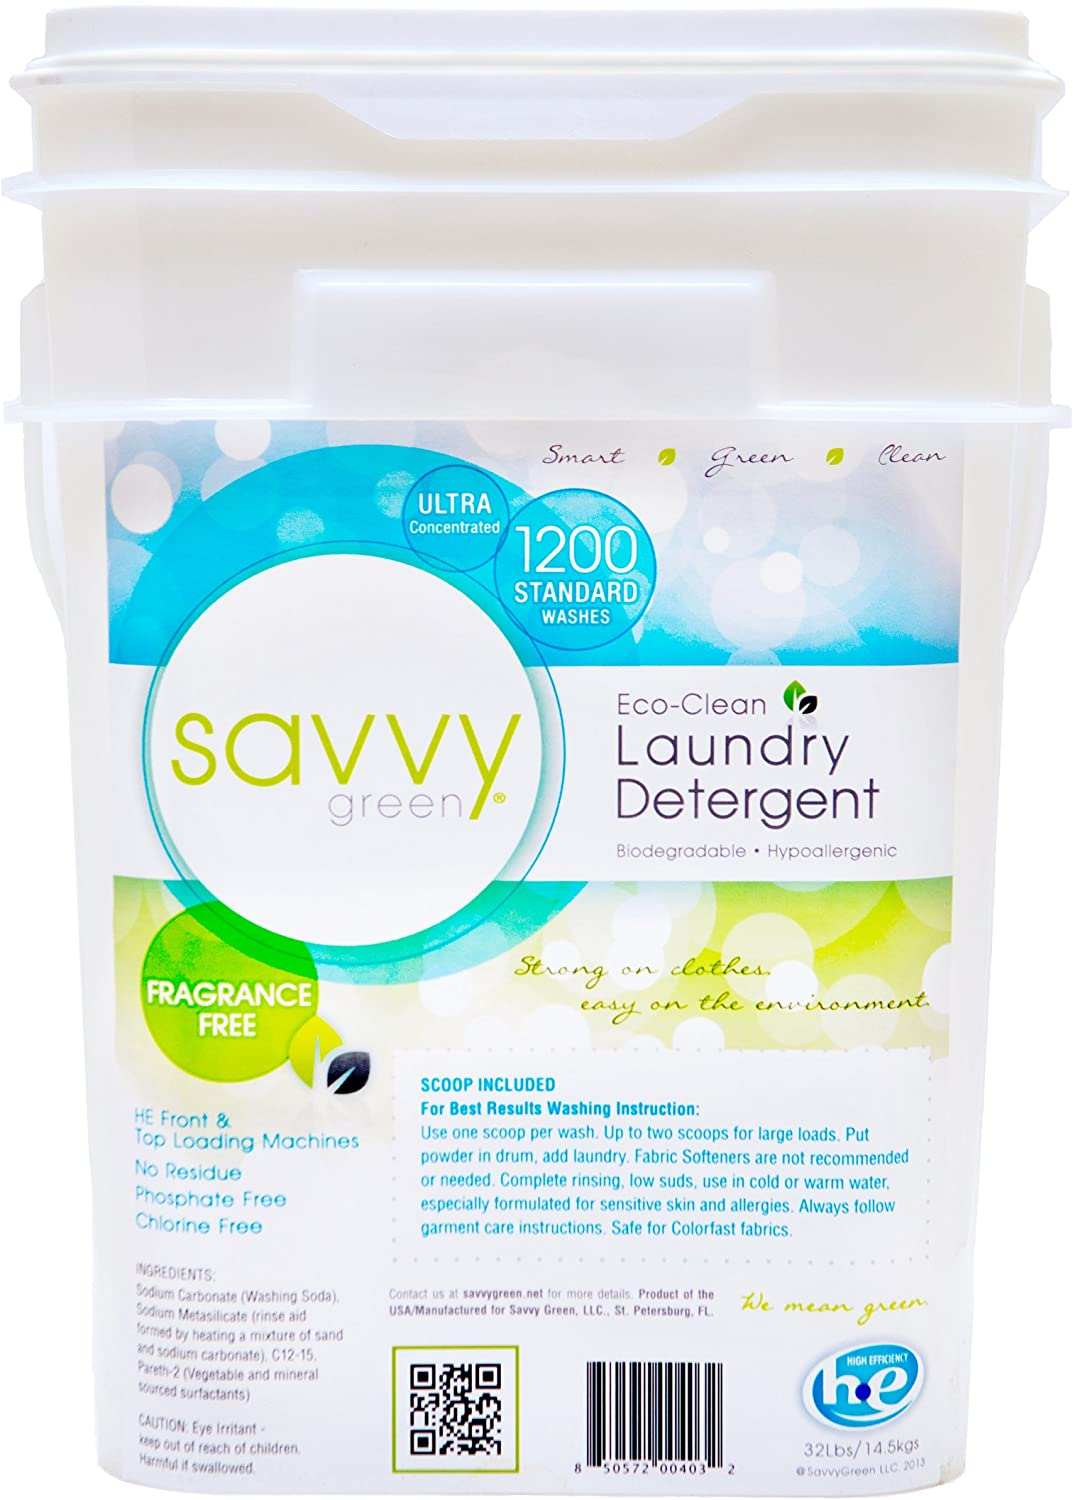 Savvy Green Ultra-Concentrated Laundry Detergent Powder, 32lbs, 1200 Standard Washes